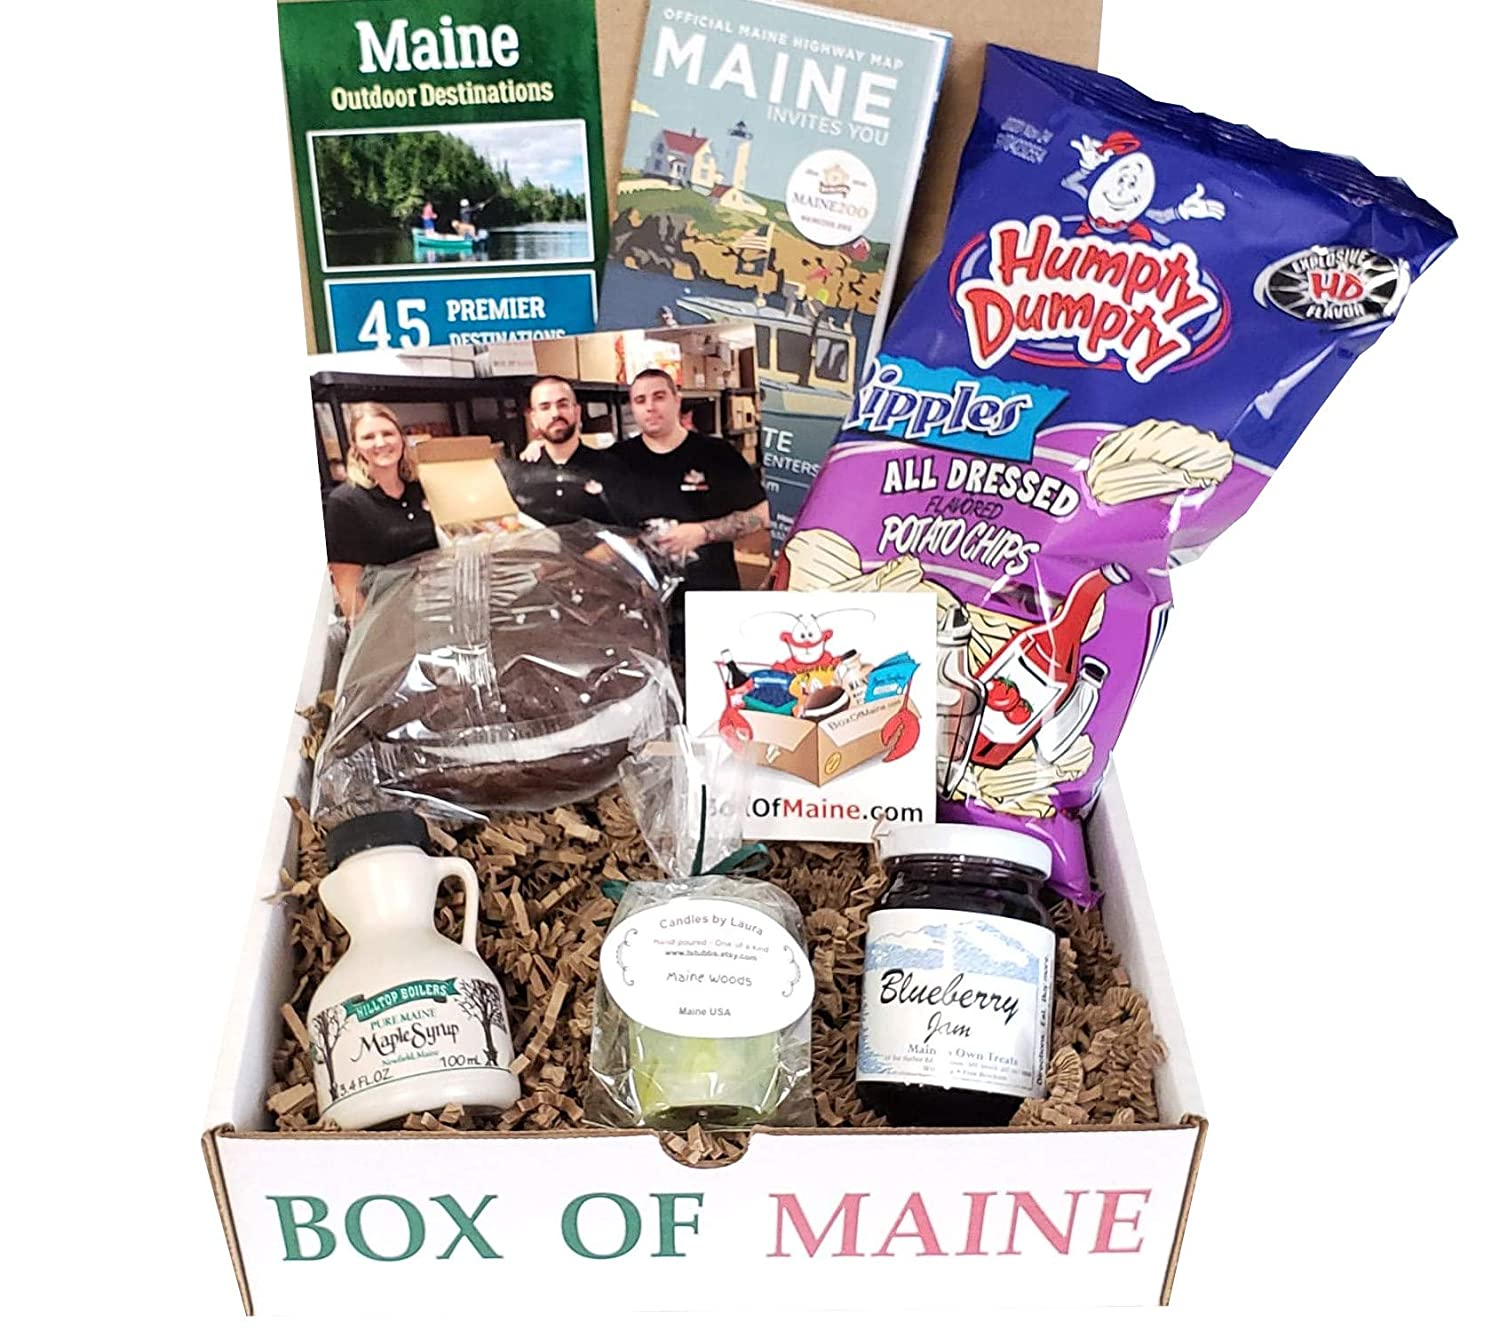 Box of Maine - 5-item Gift Pack - Humpty Dumpty All Dressed, Chocolate Whoopie Pie, Wild Maine Blueberry Jam, Maine Maple Syrup and Maine Woods Candle